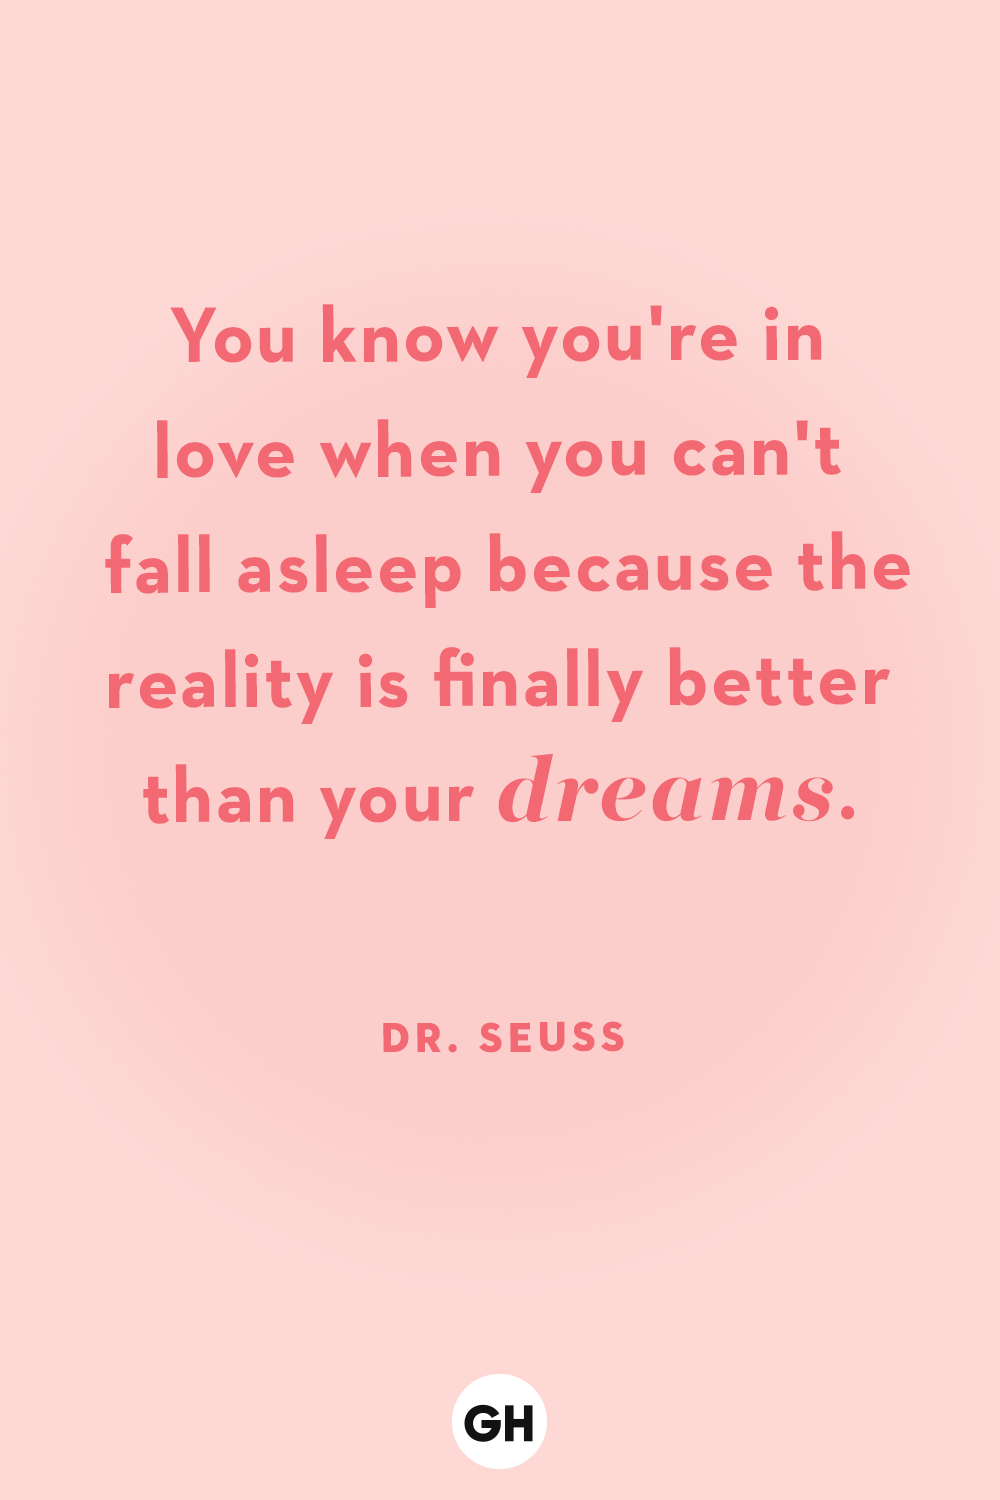 65 Best Love Quotes of All Time Cute Famous Sayings About Love